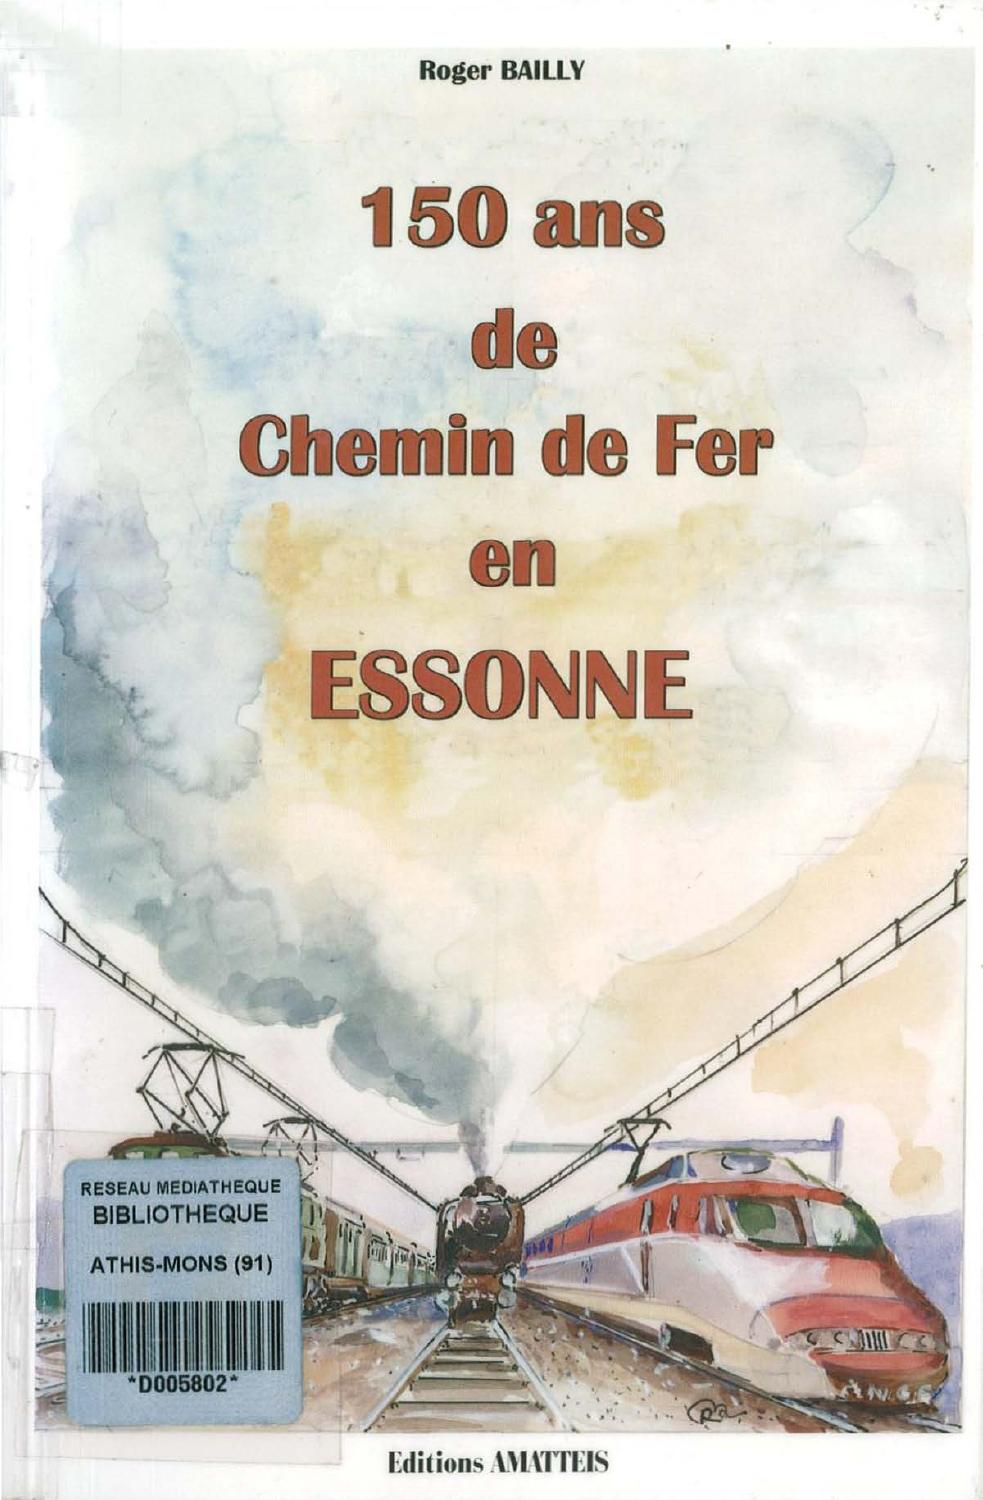 La Petite Chemin Cheminée Marcoussis Trainsdelessonne Ocr2 By Dan Dylan Issuu